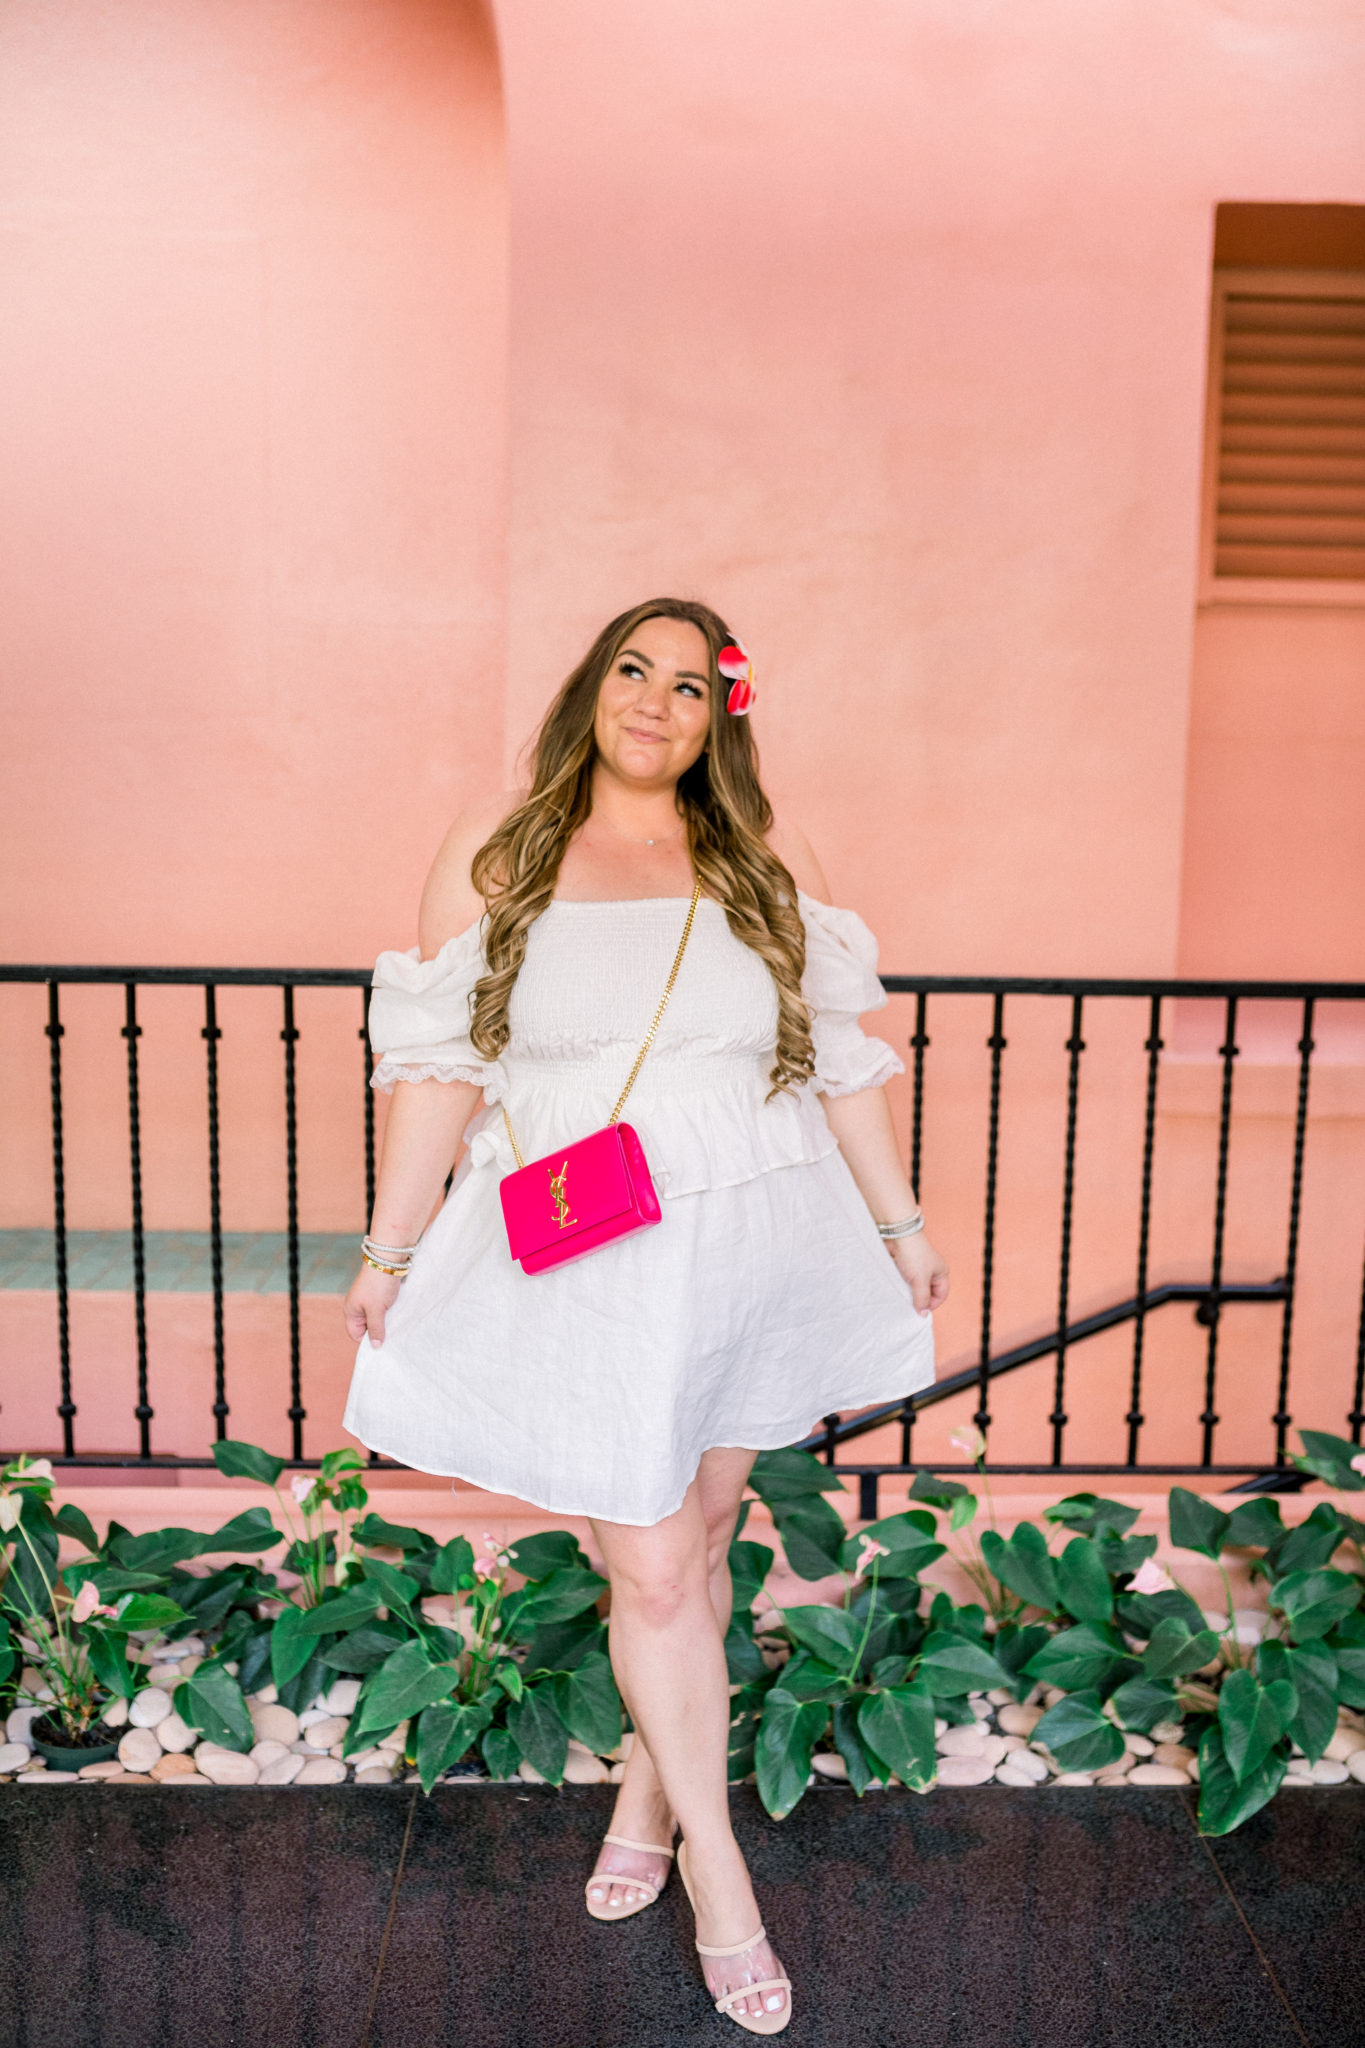 missyonmadison, missyonmadison blog, la blogger, missyonmadison outfit inspo, missyonmadison instagram, lpa dress, lpa revolve, revolve around the world, ysl pink bag, ysl bag, raye sandals, white dress, spring style, spring 2020 outfit inspo, royal hawaiin hotel, hawaii outfit ideas,